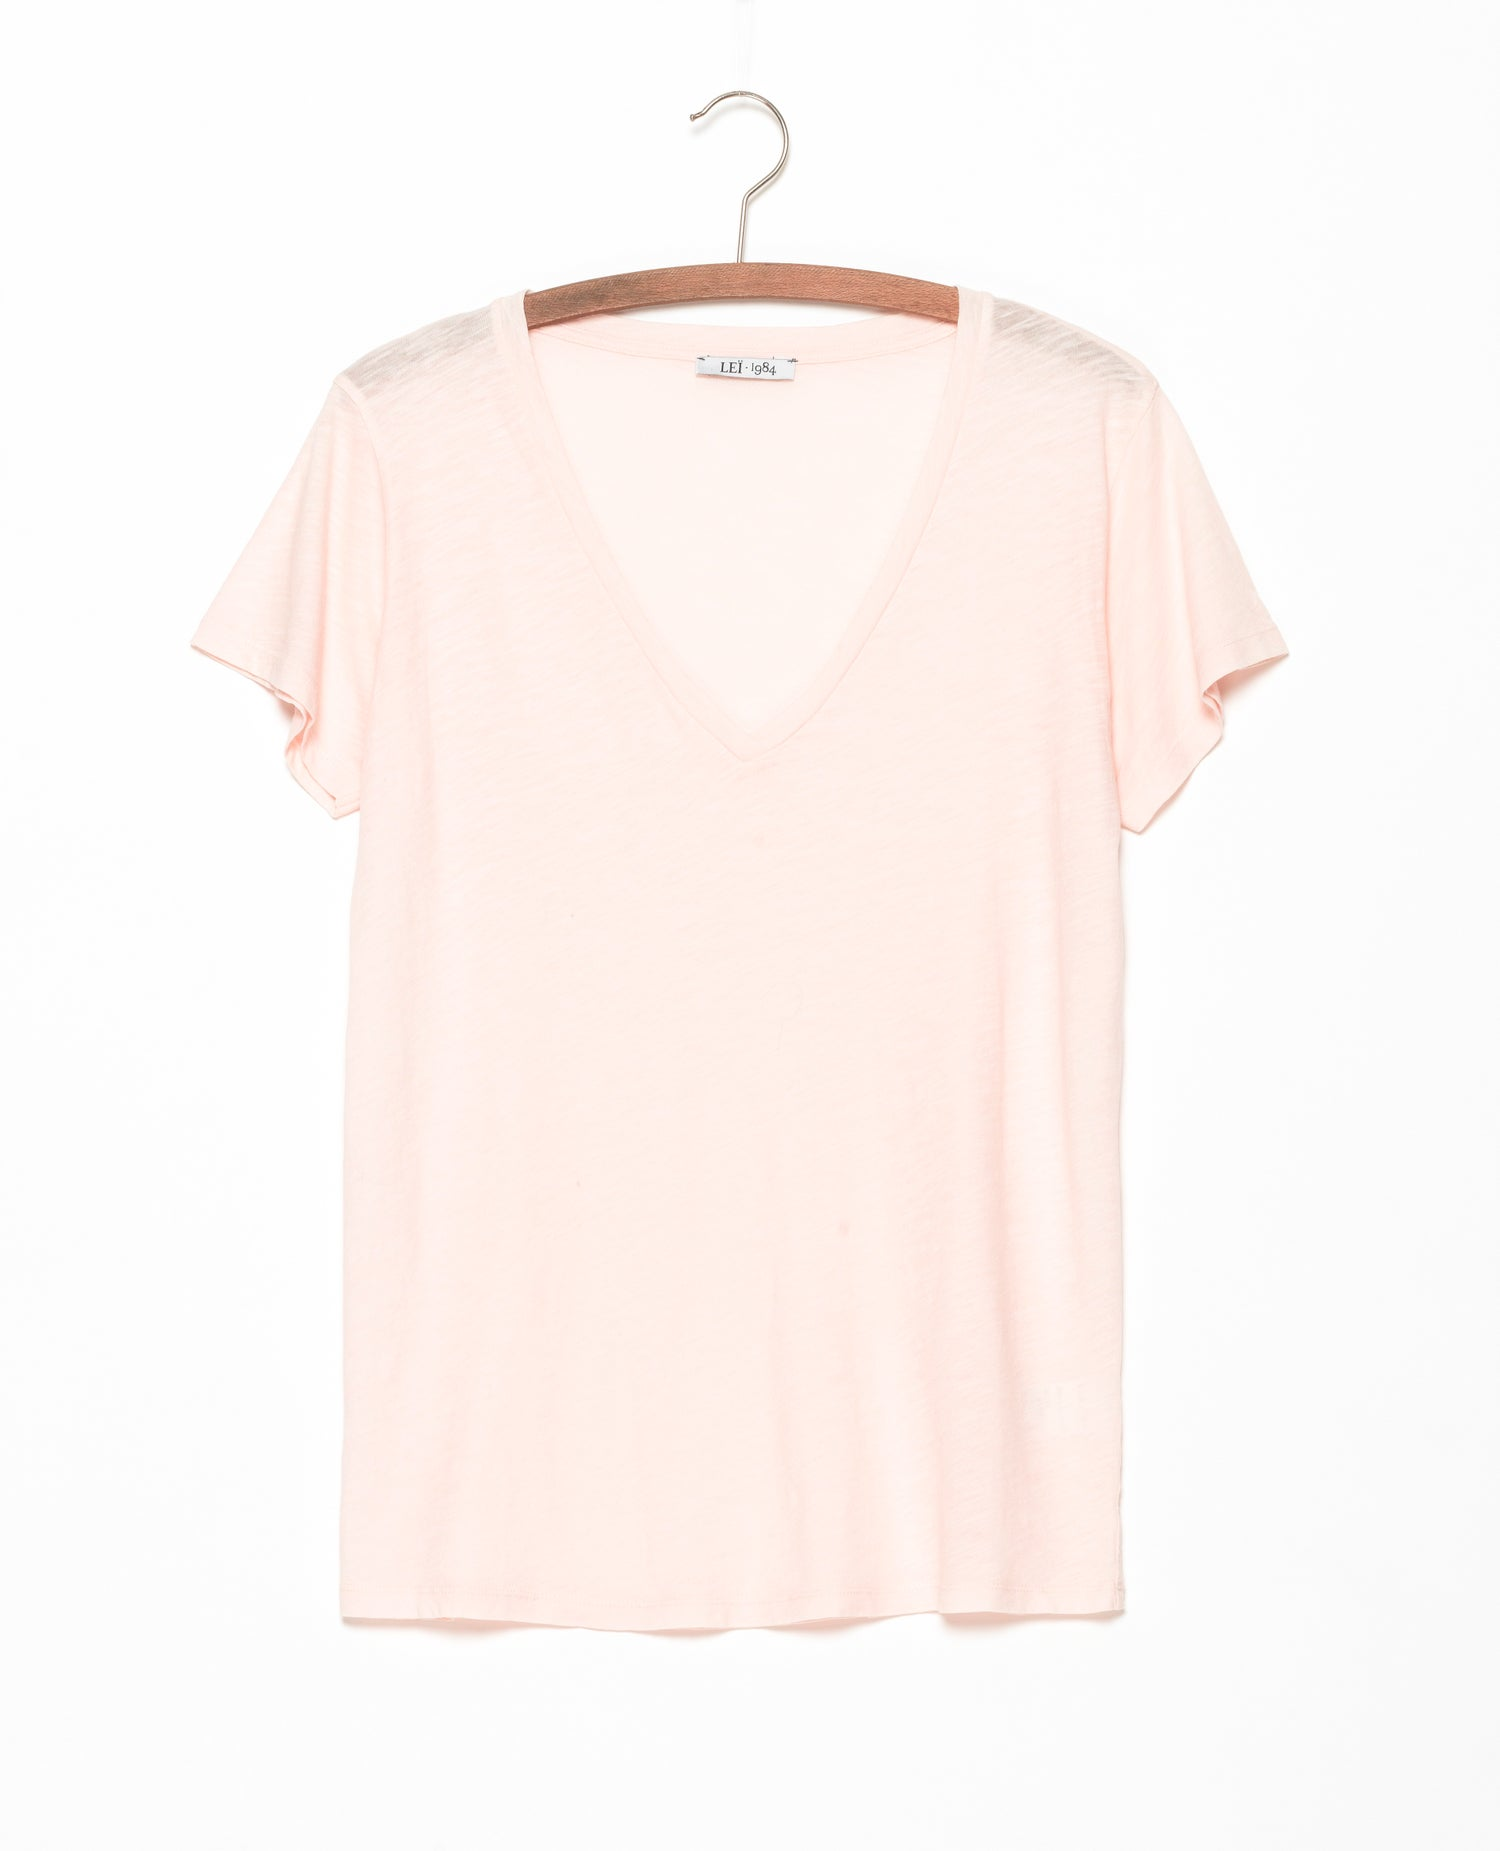 Image of Tee-shirt flamé CERISE BIS coloris pastels